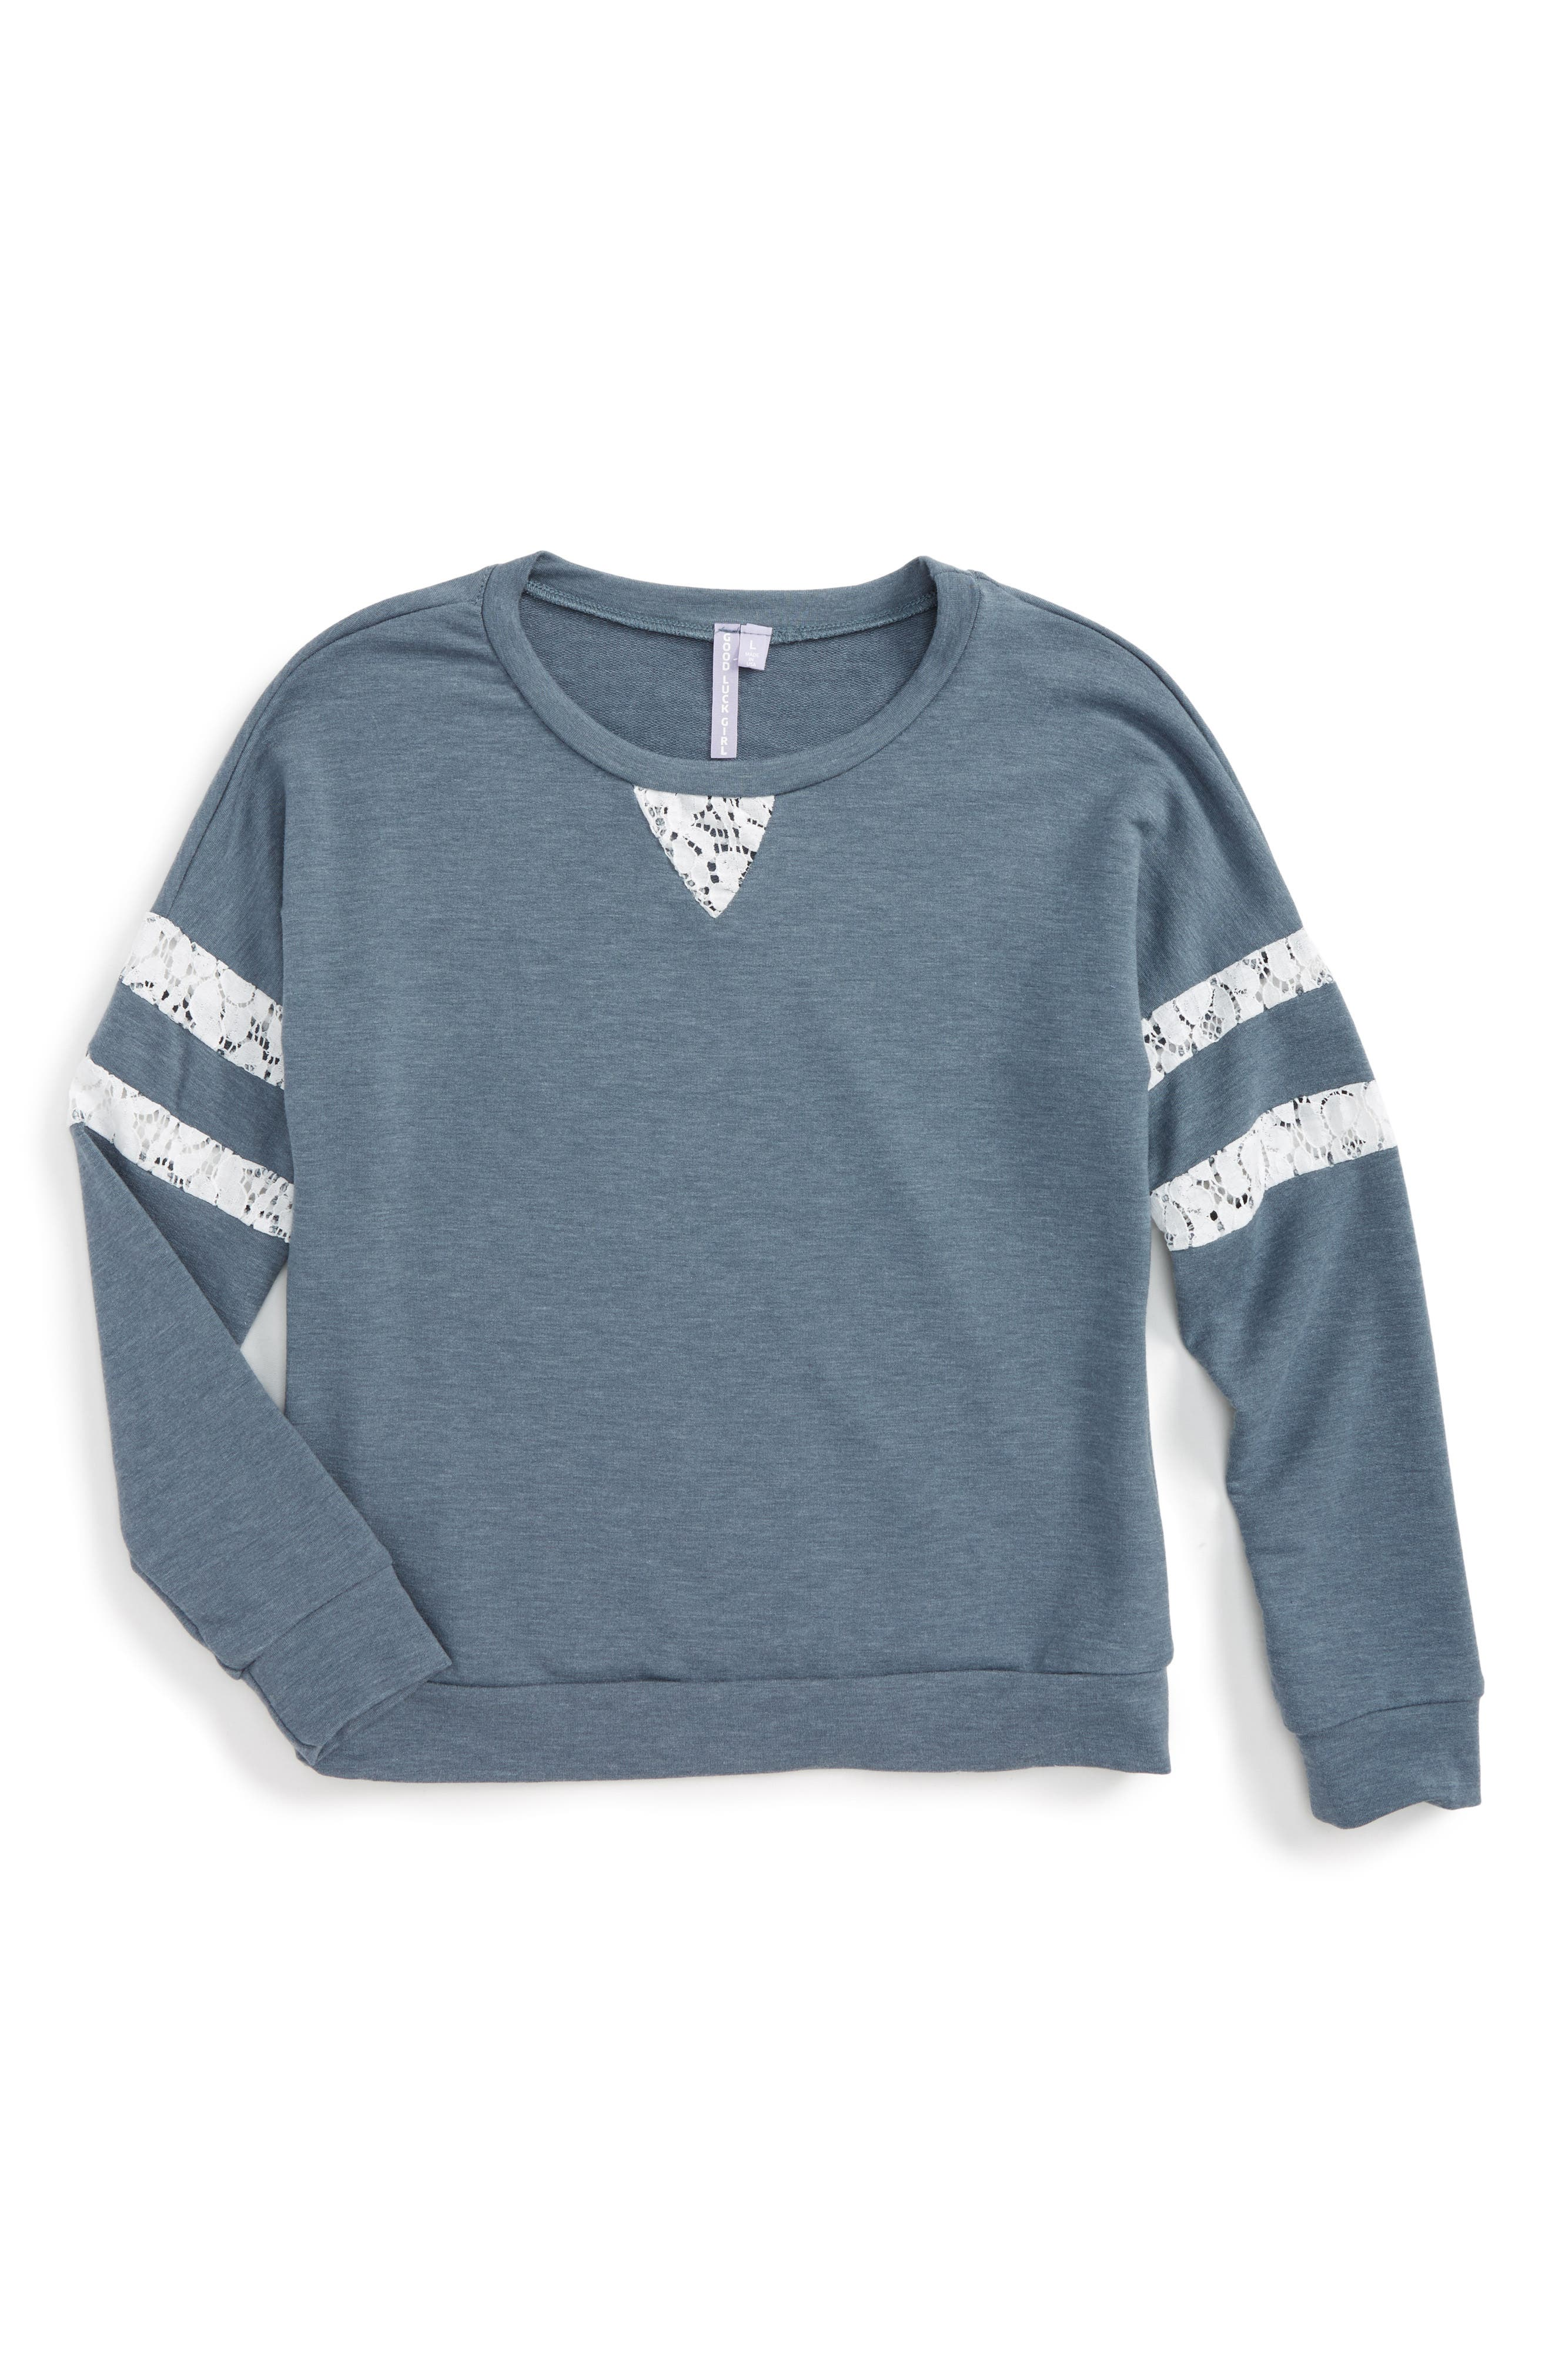 Alternate Image 1 Selected - Good Luck Gem Lace Inset Sweatshirt (Big Girls)